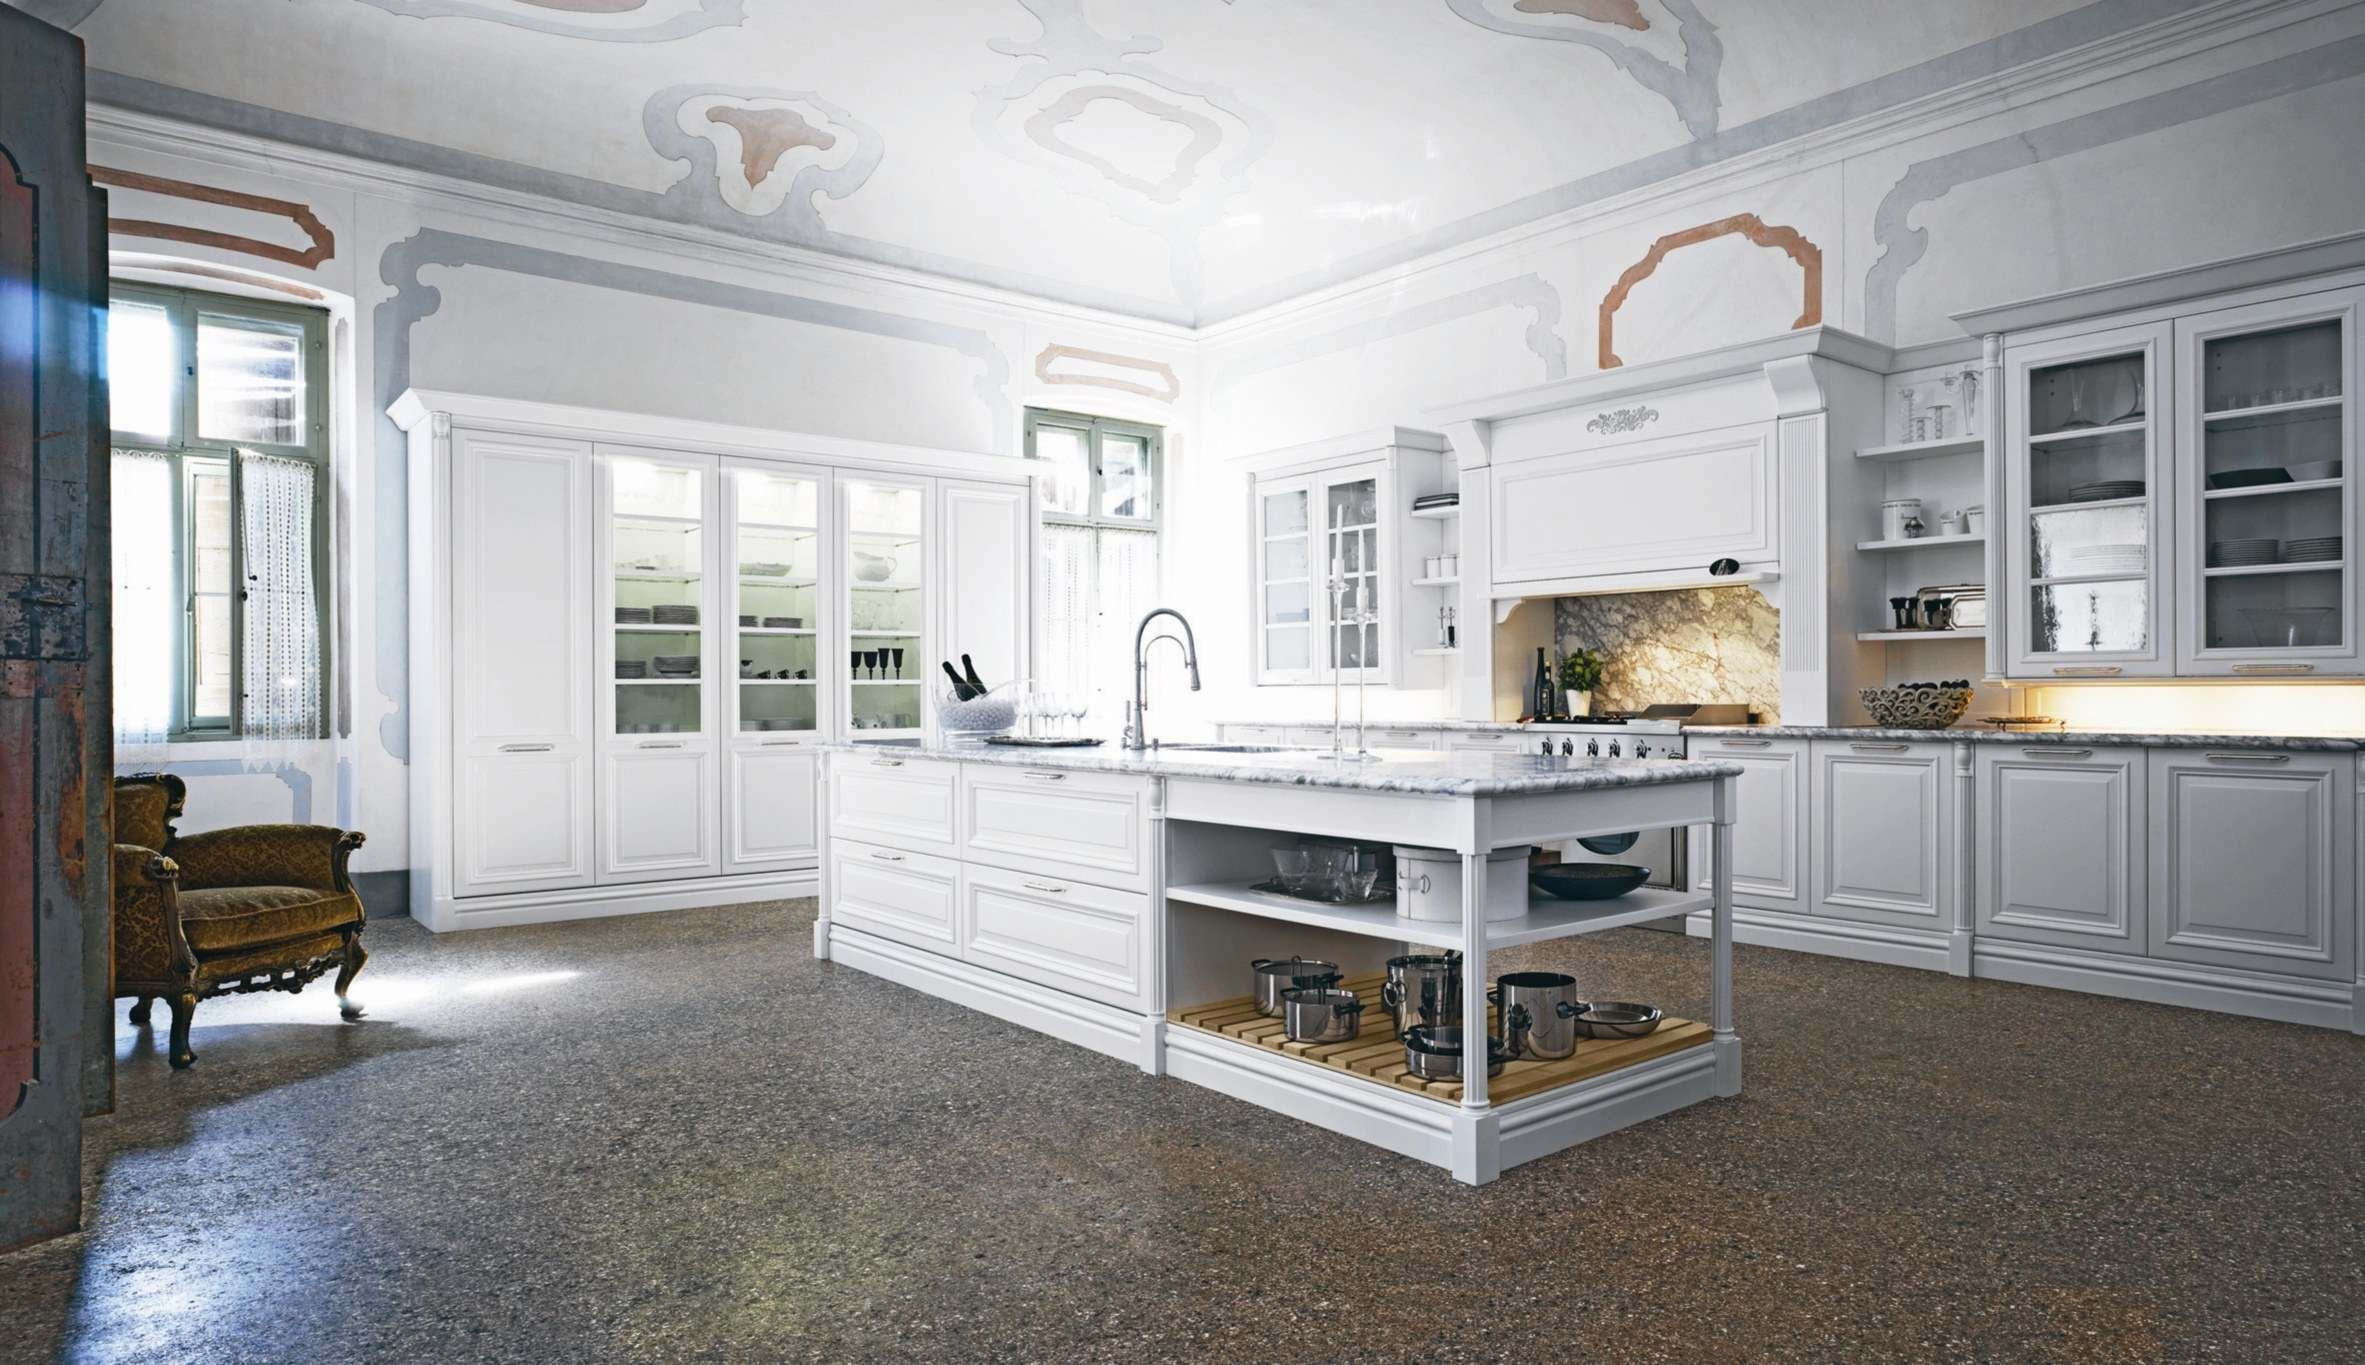 white kitchens kitchens with white cabinets modern white kitchen cabinets modern white kitchen cabinets kitchen design ideas white cabinets